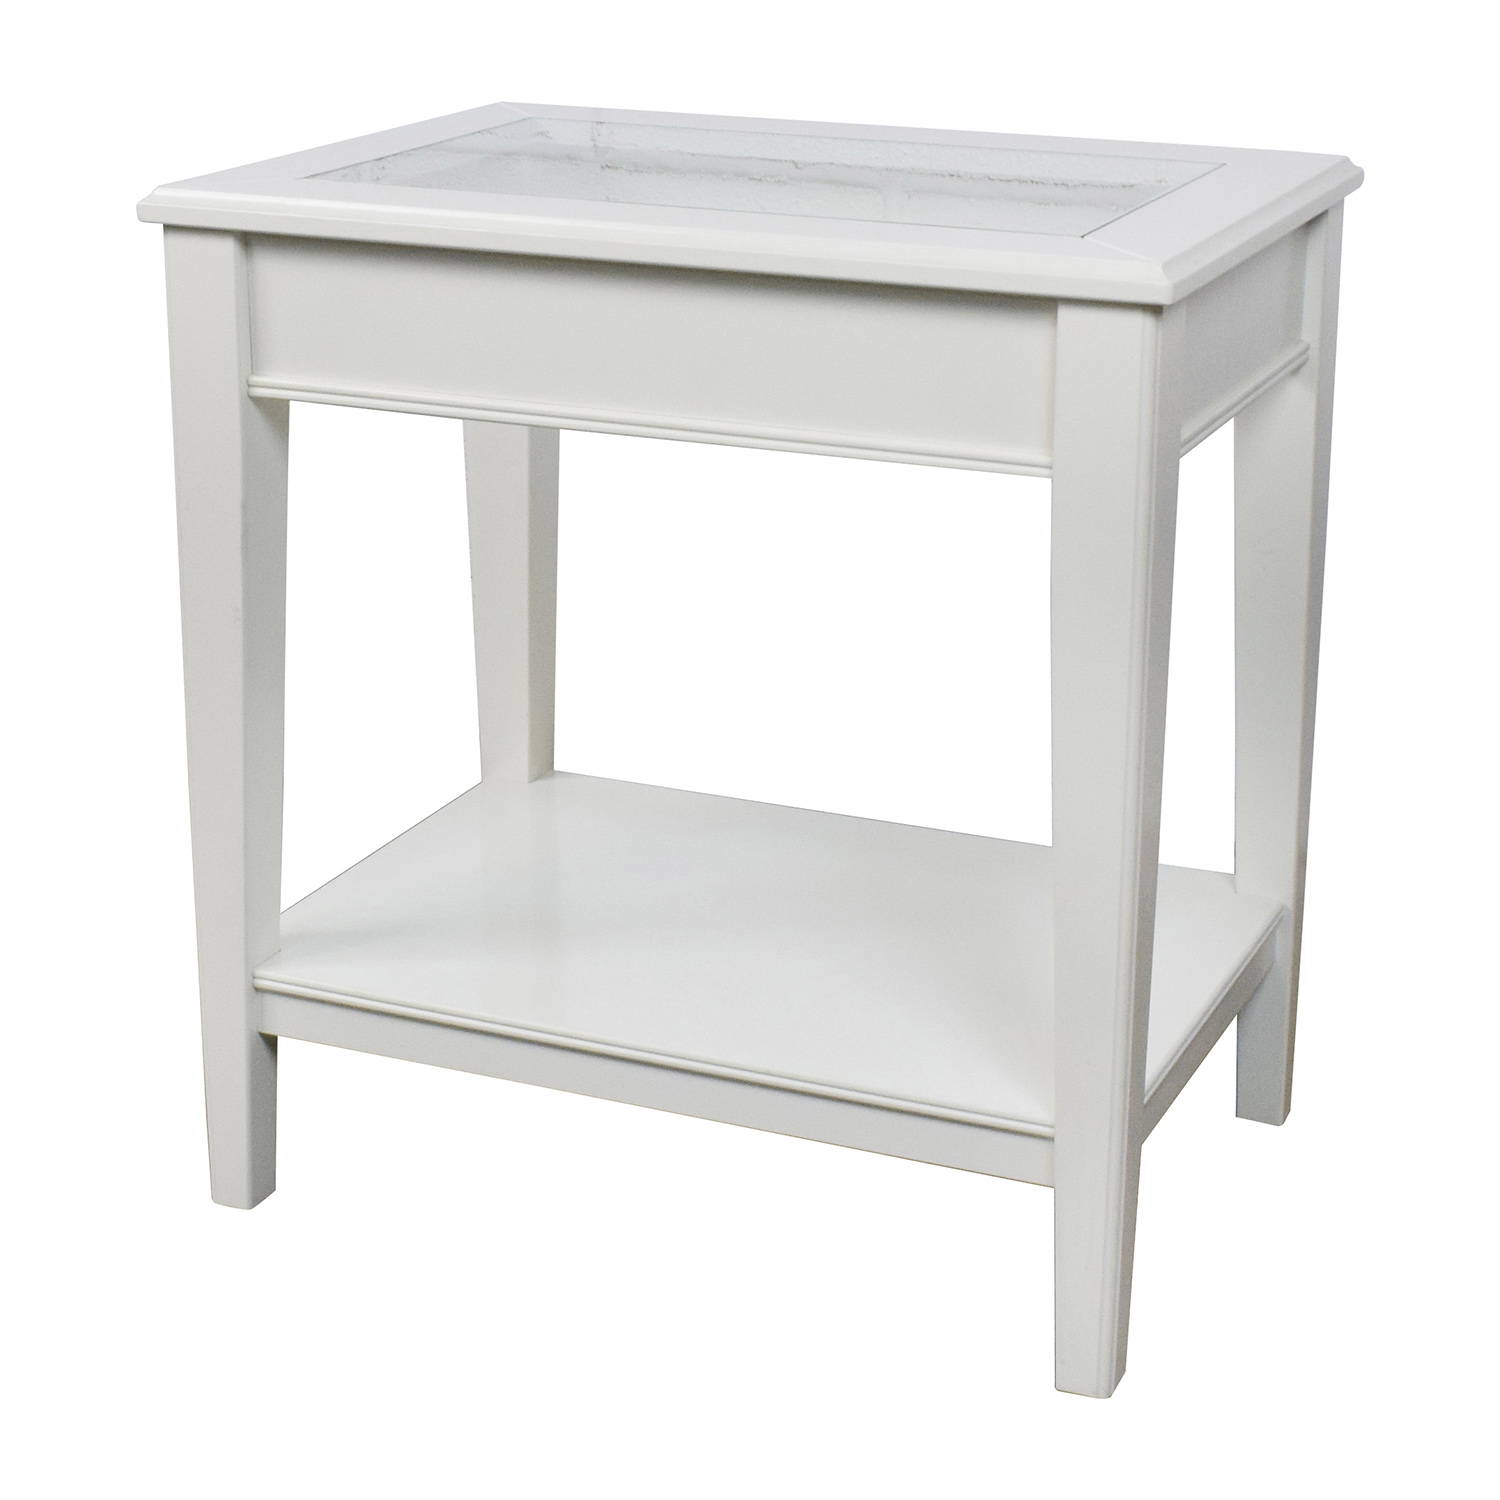 White Wooden End Tables 85 Off West Elm West Elm White Glass And Wood Side